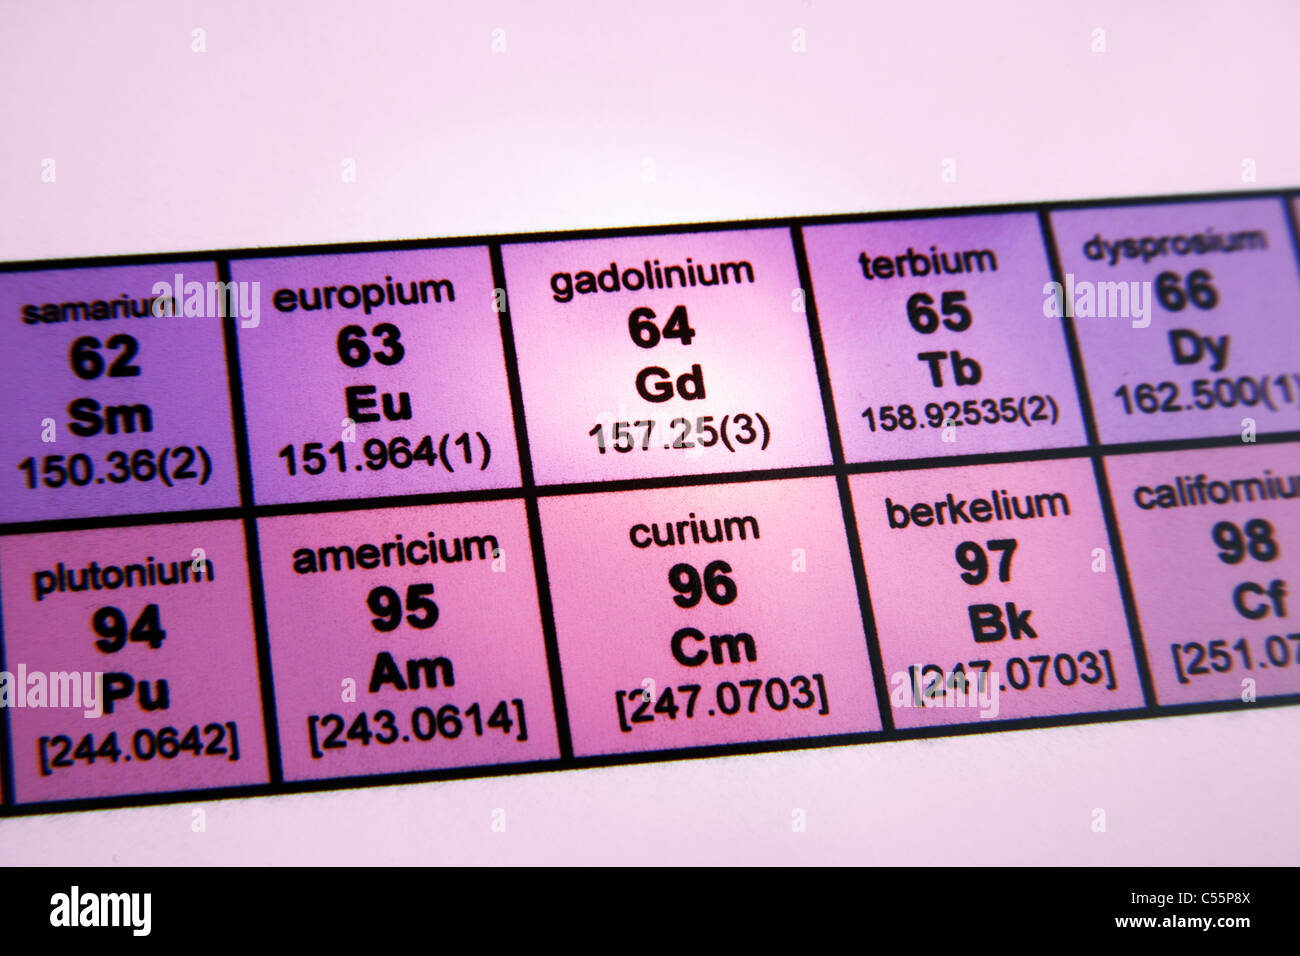 The periodic table of elements rare earth elements focus on stock photo the periodic table of elements rare earth elements focus on gadolinium gamestrikefo Gallery